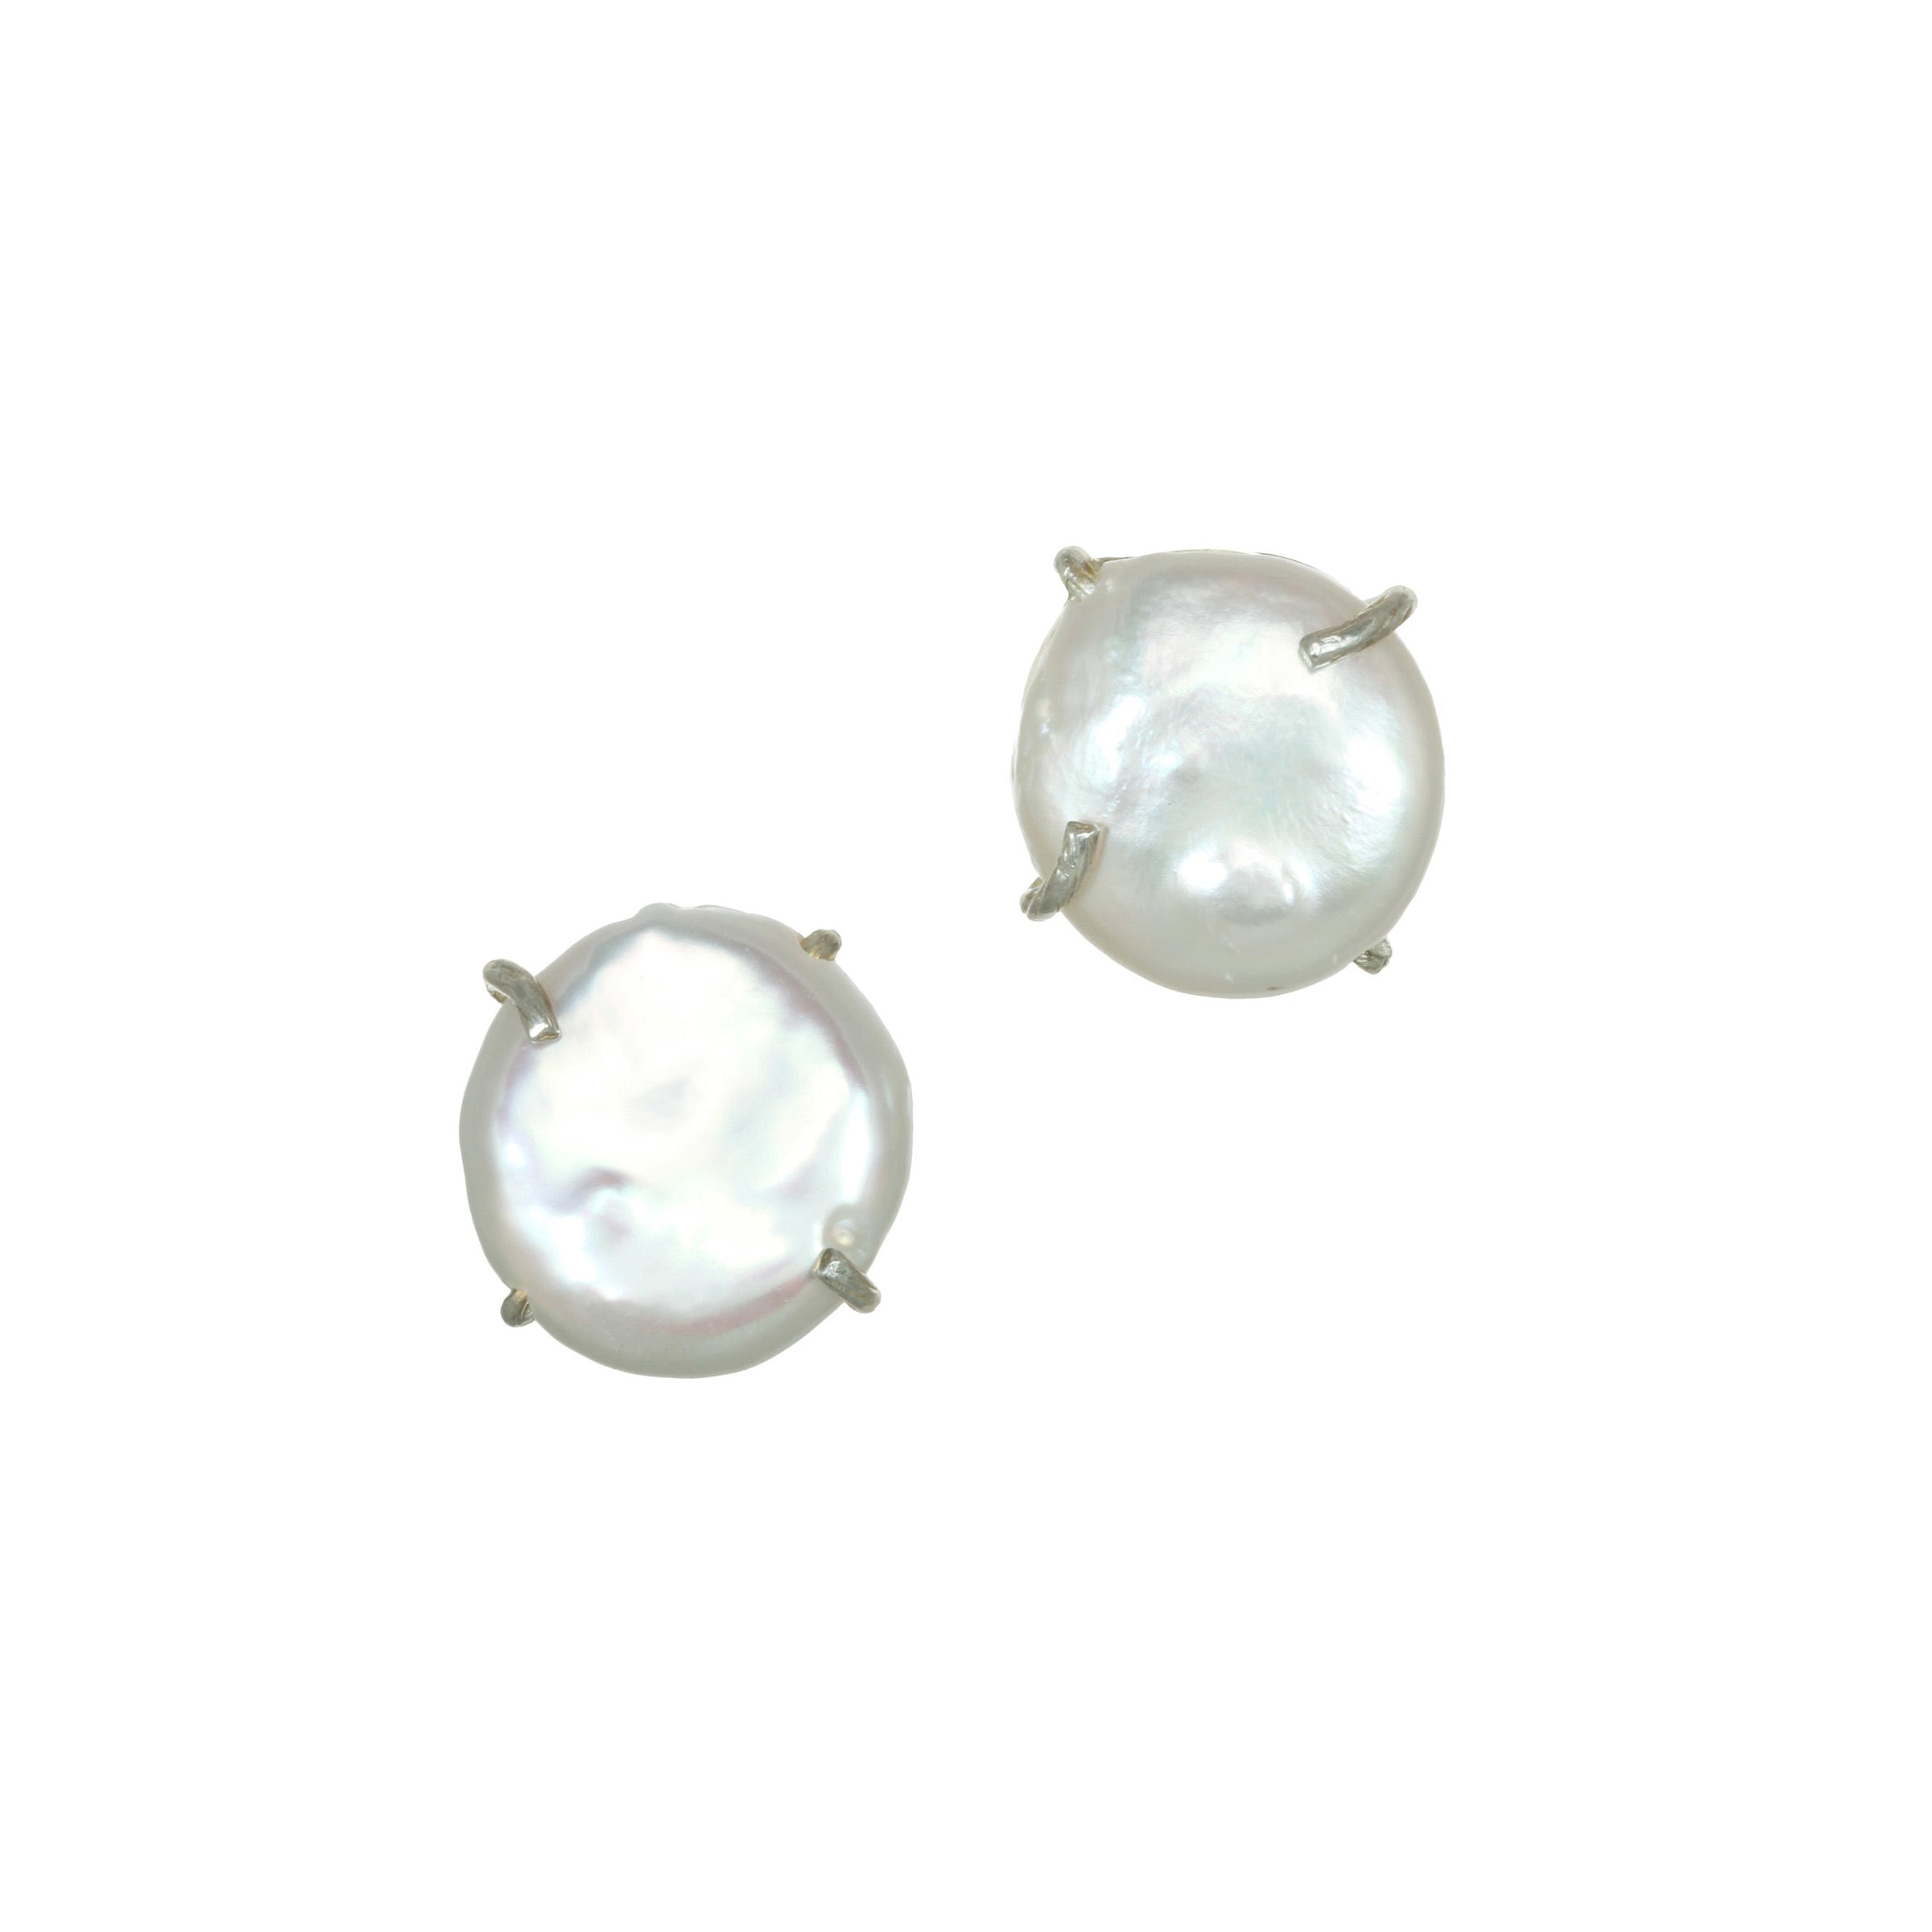 Freshwater Cultured Coin Pearl Earrings, 14MM, Sterling Silver